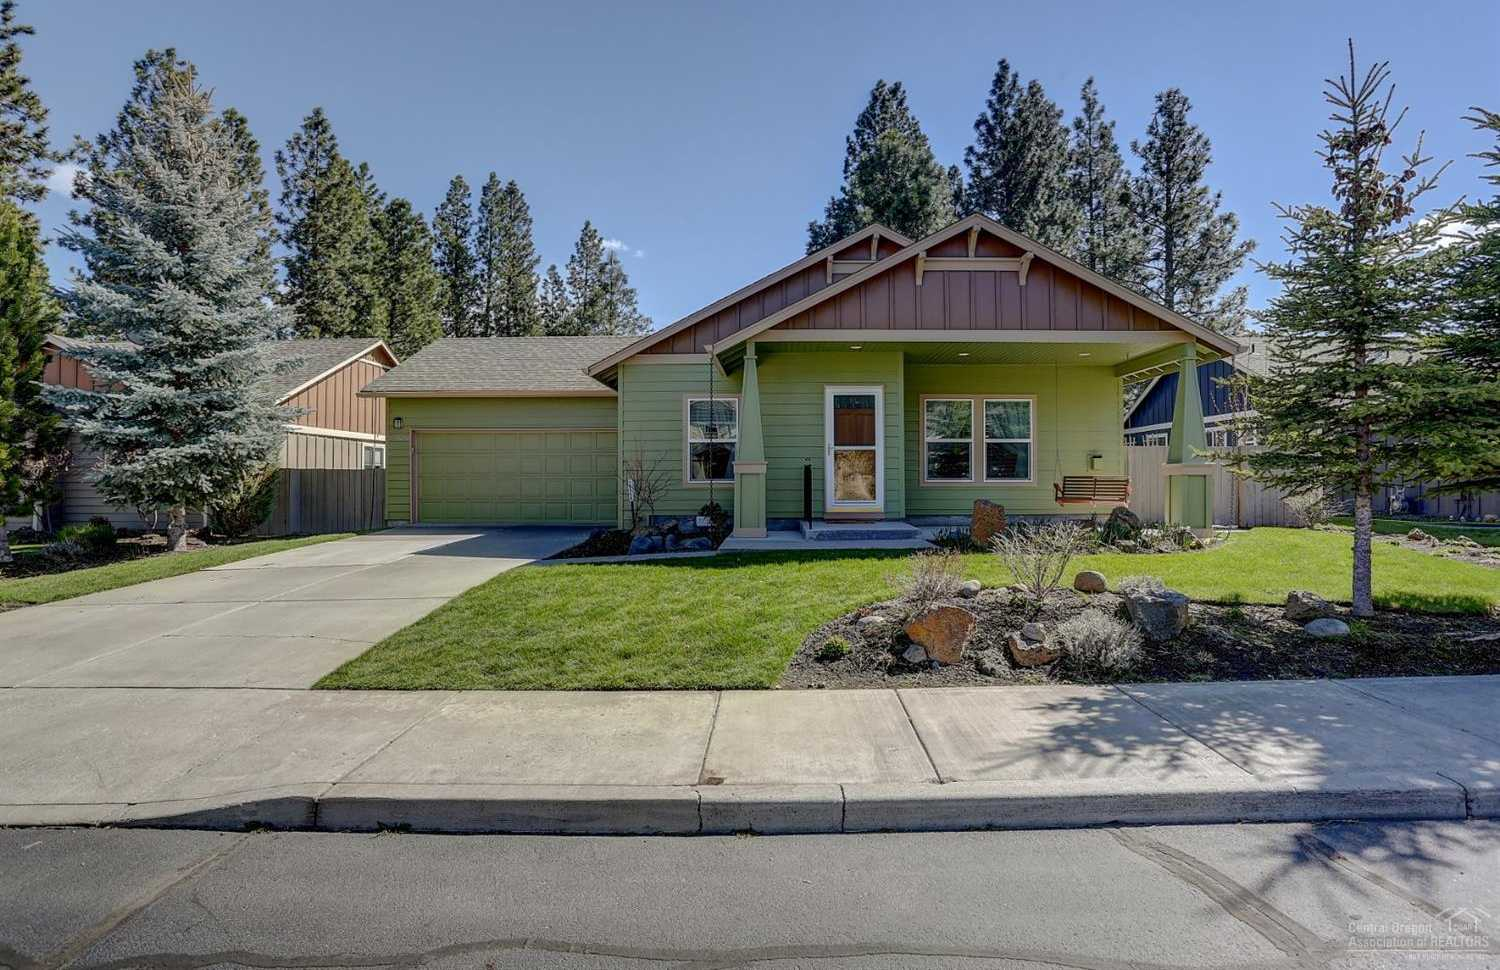 $394,120 - 2Br/2Ba -  for Sale in Bend